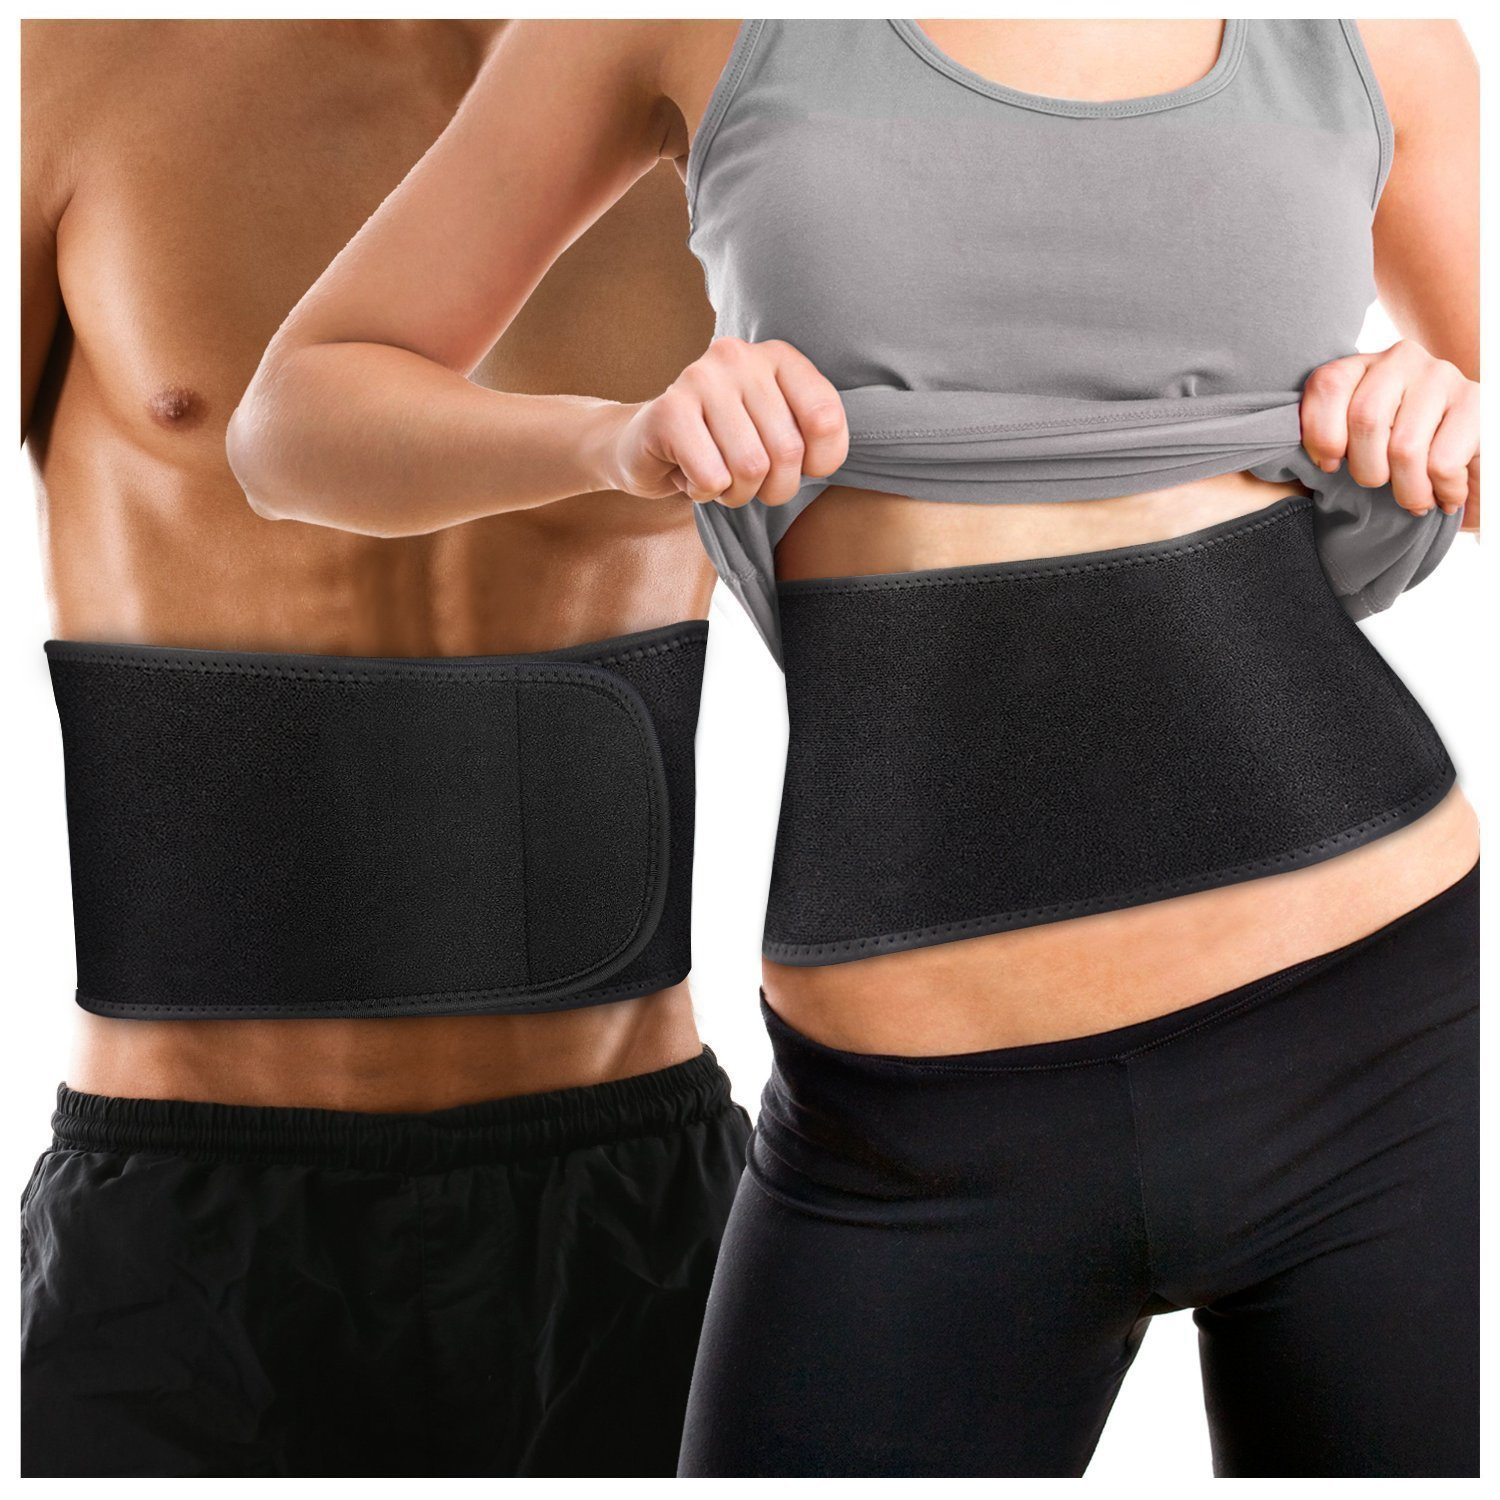 7bd1a640cf Get Quotations · Waist Trimmer Belt for Men   Women